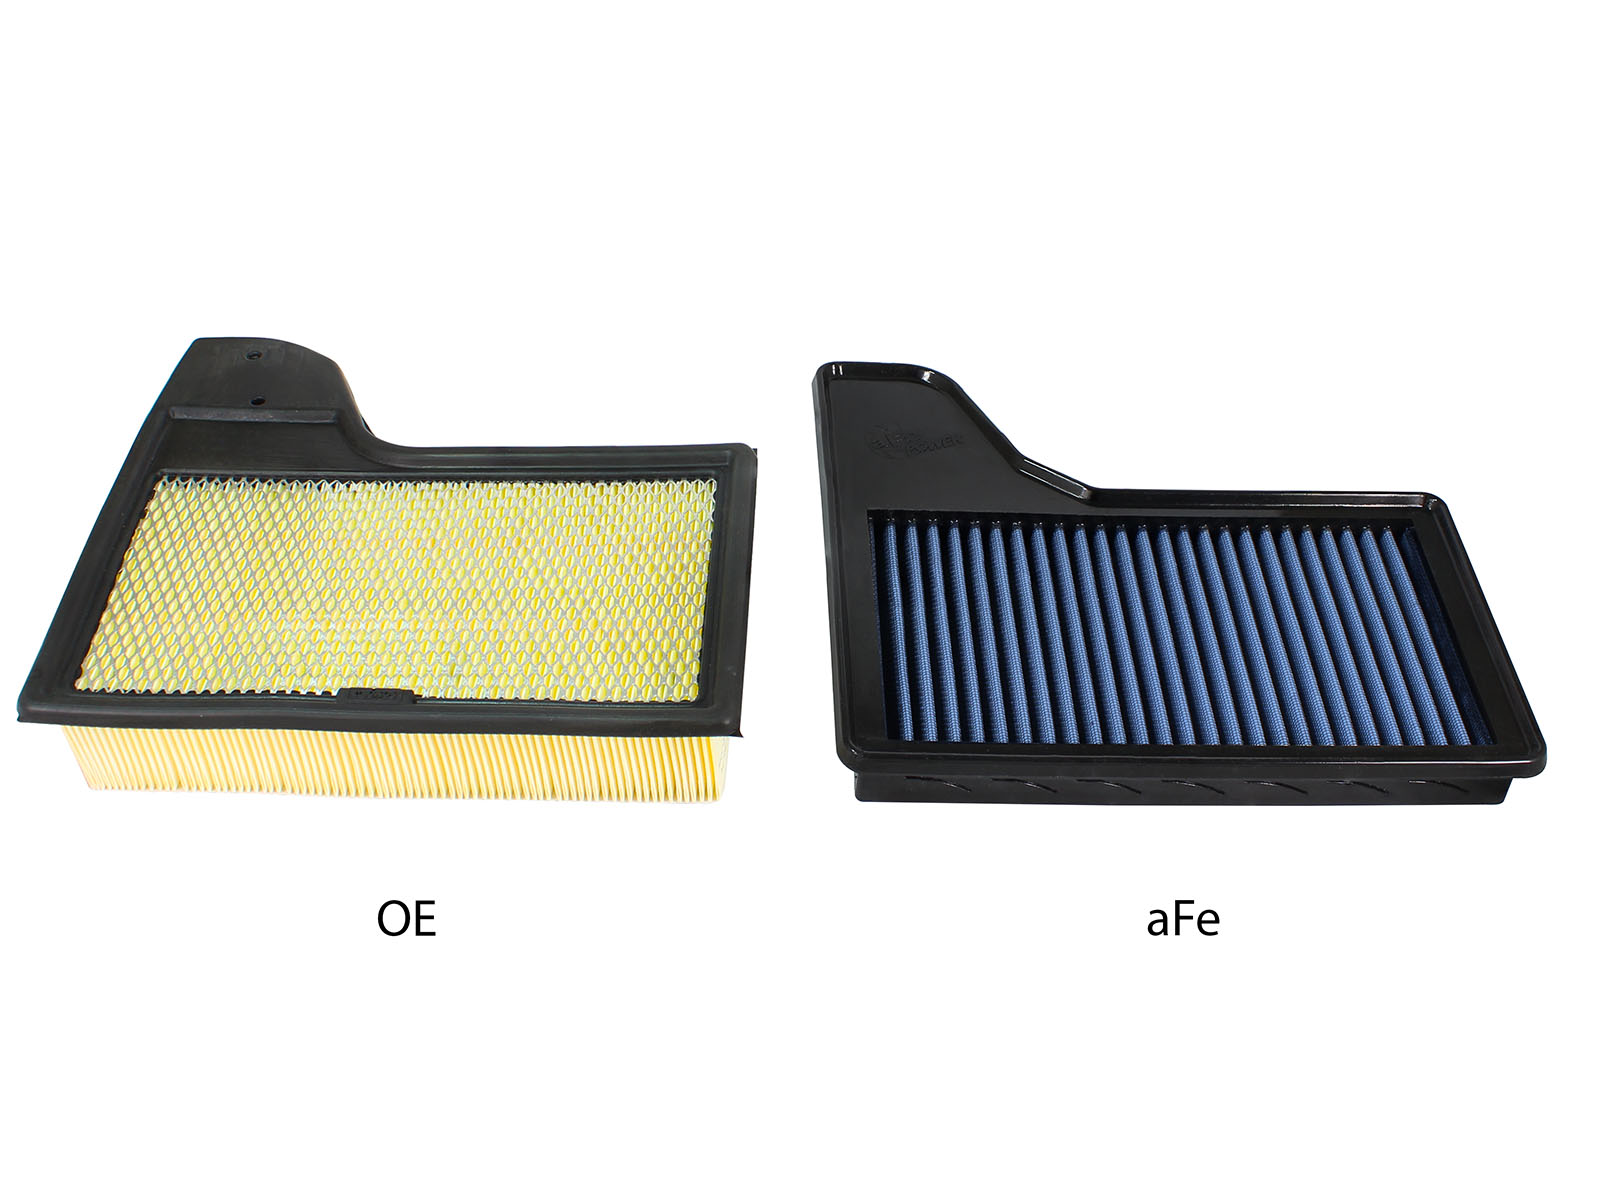 Ford Mustang S550 2015-2016 Pro 5R OER filter (2)